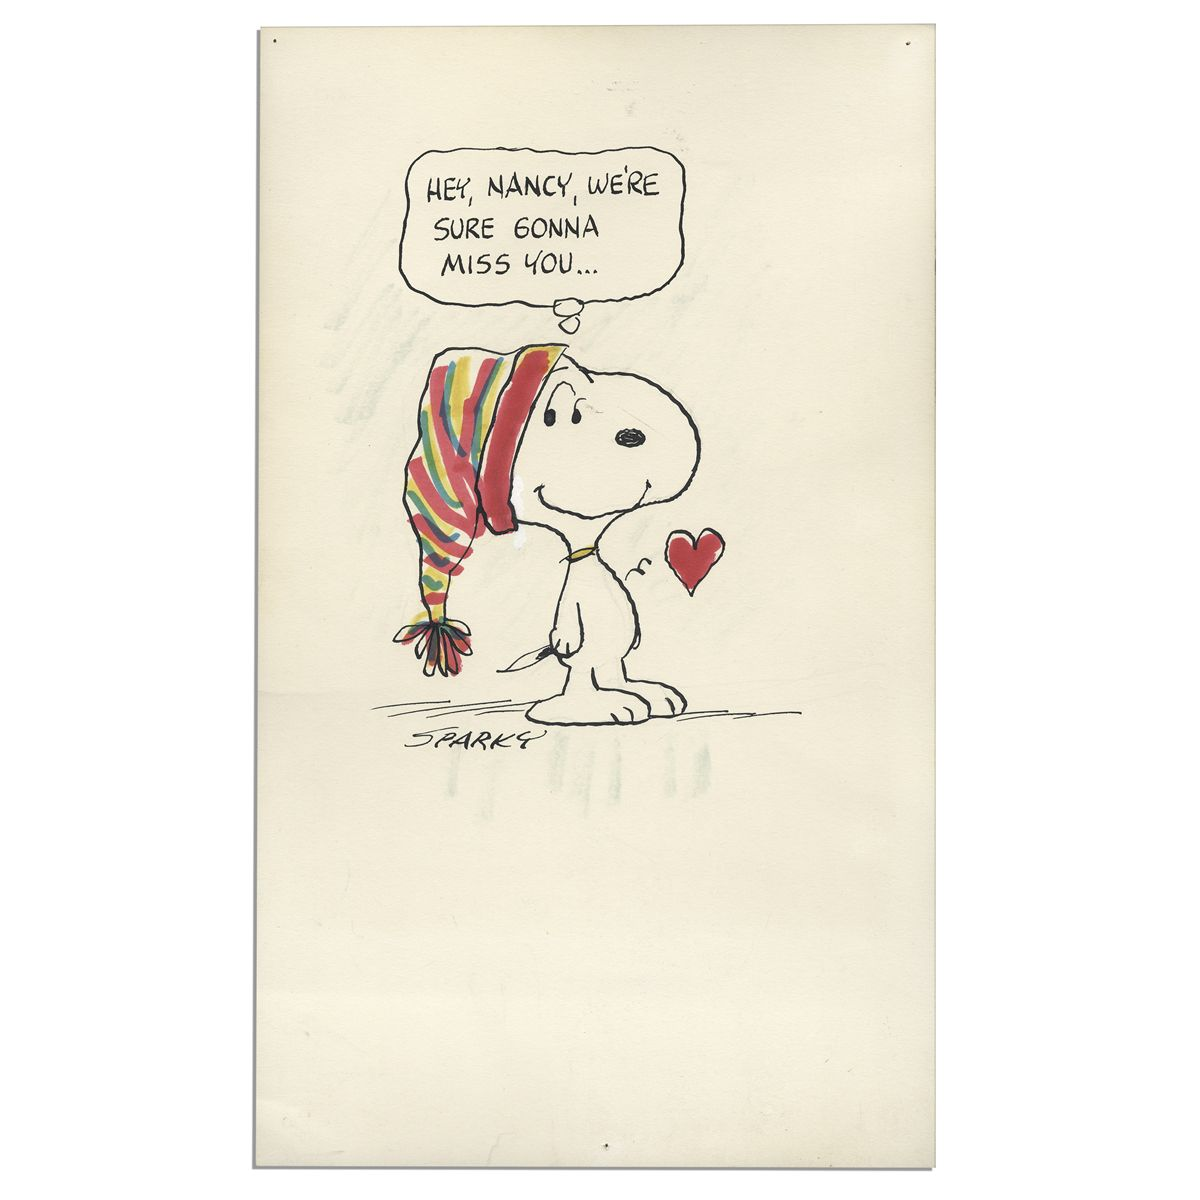 1200x1200 Charles Schulz Drawing Of Snoopy